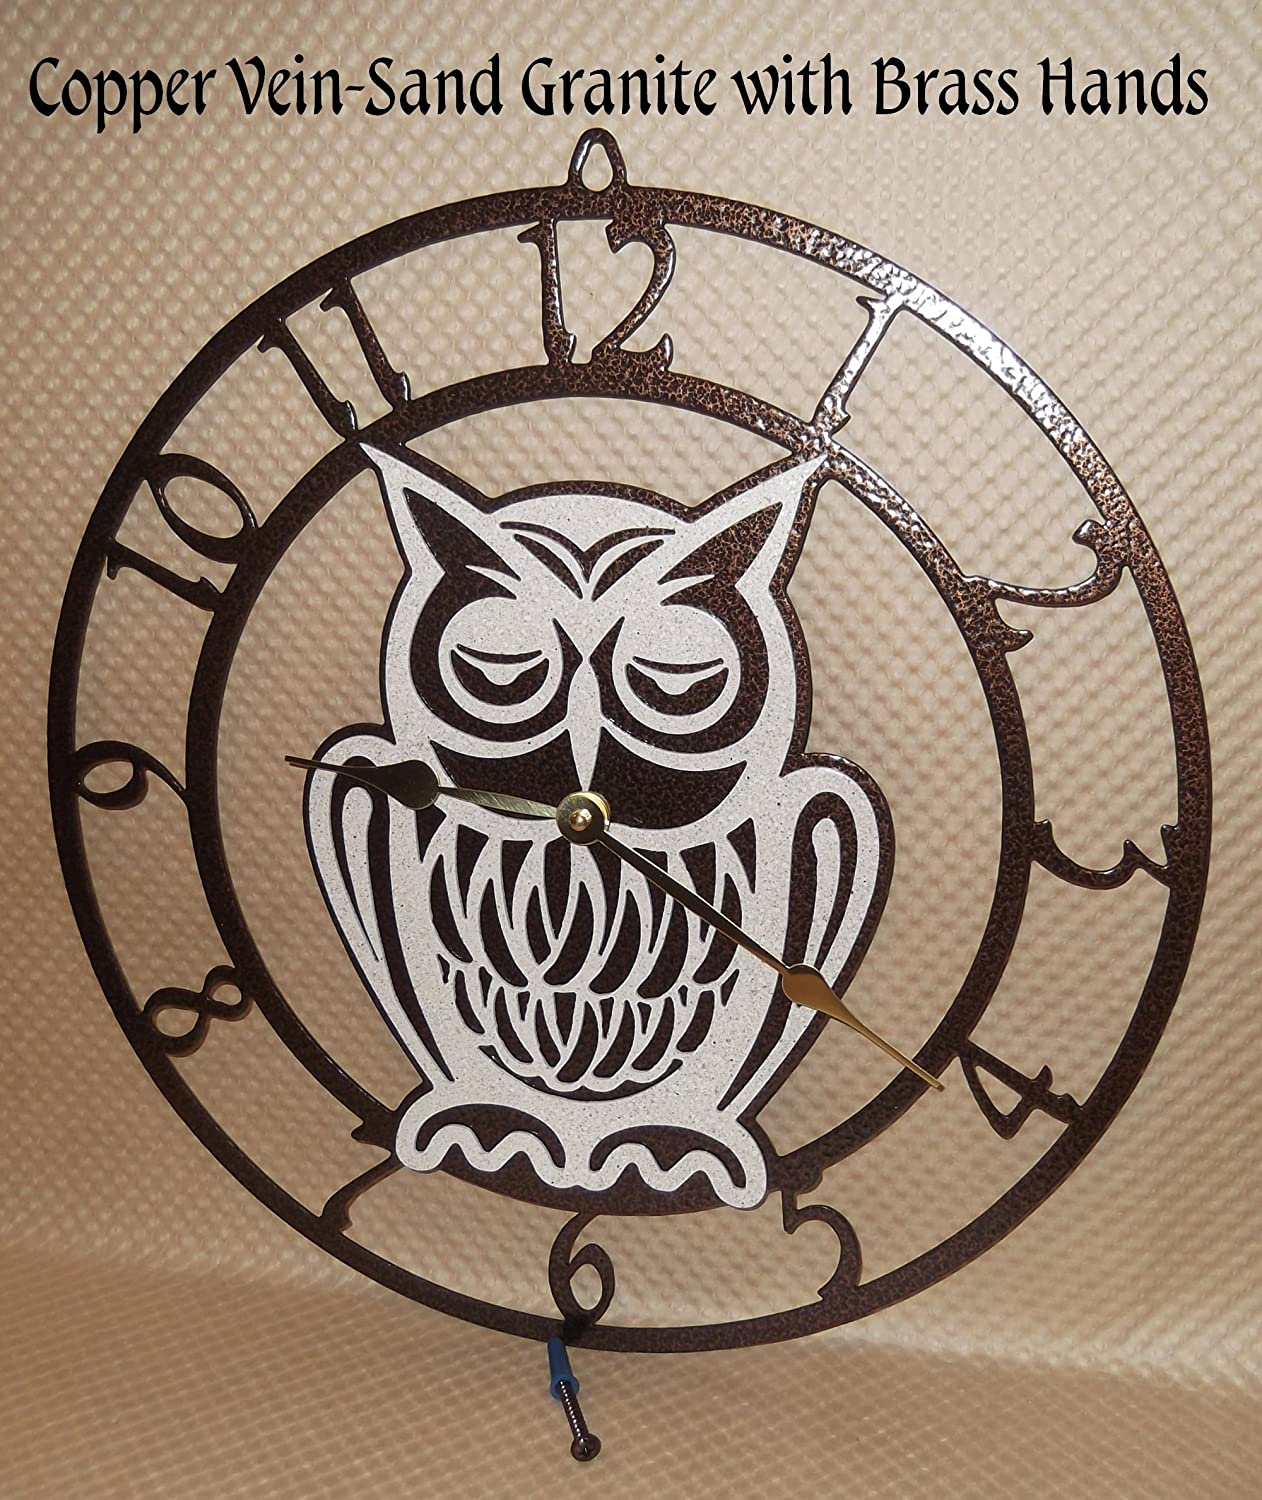 Owl Wall Clock. Handmade in USA. Copper Vein with Brass Hands. USA Quartz Movement. 15 Inch Wide.